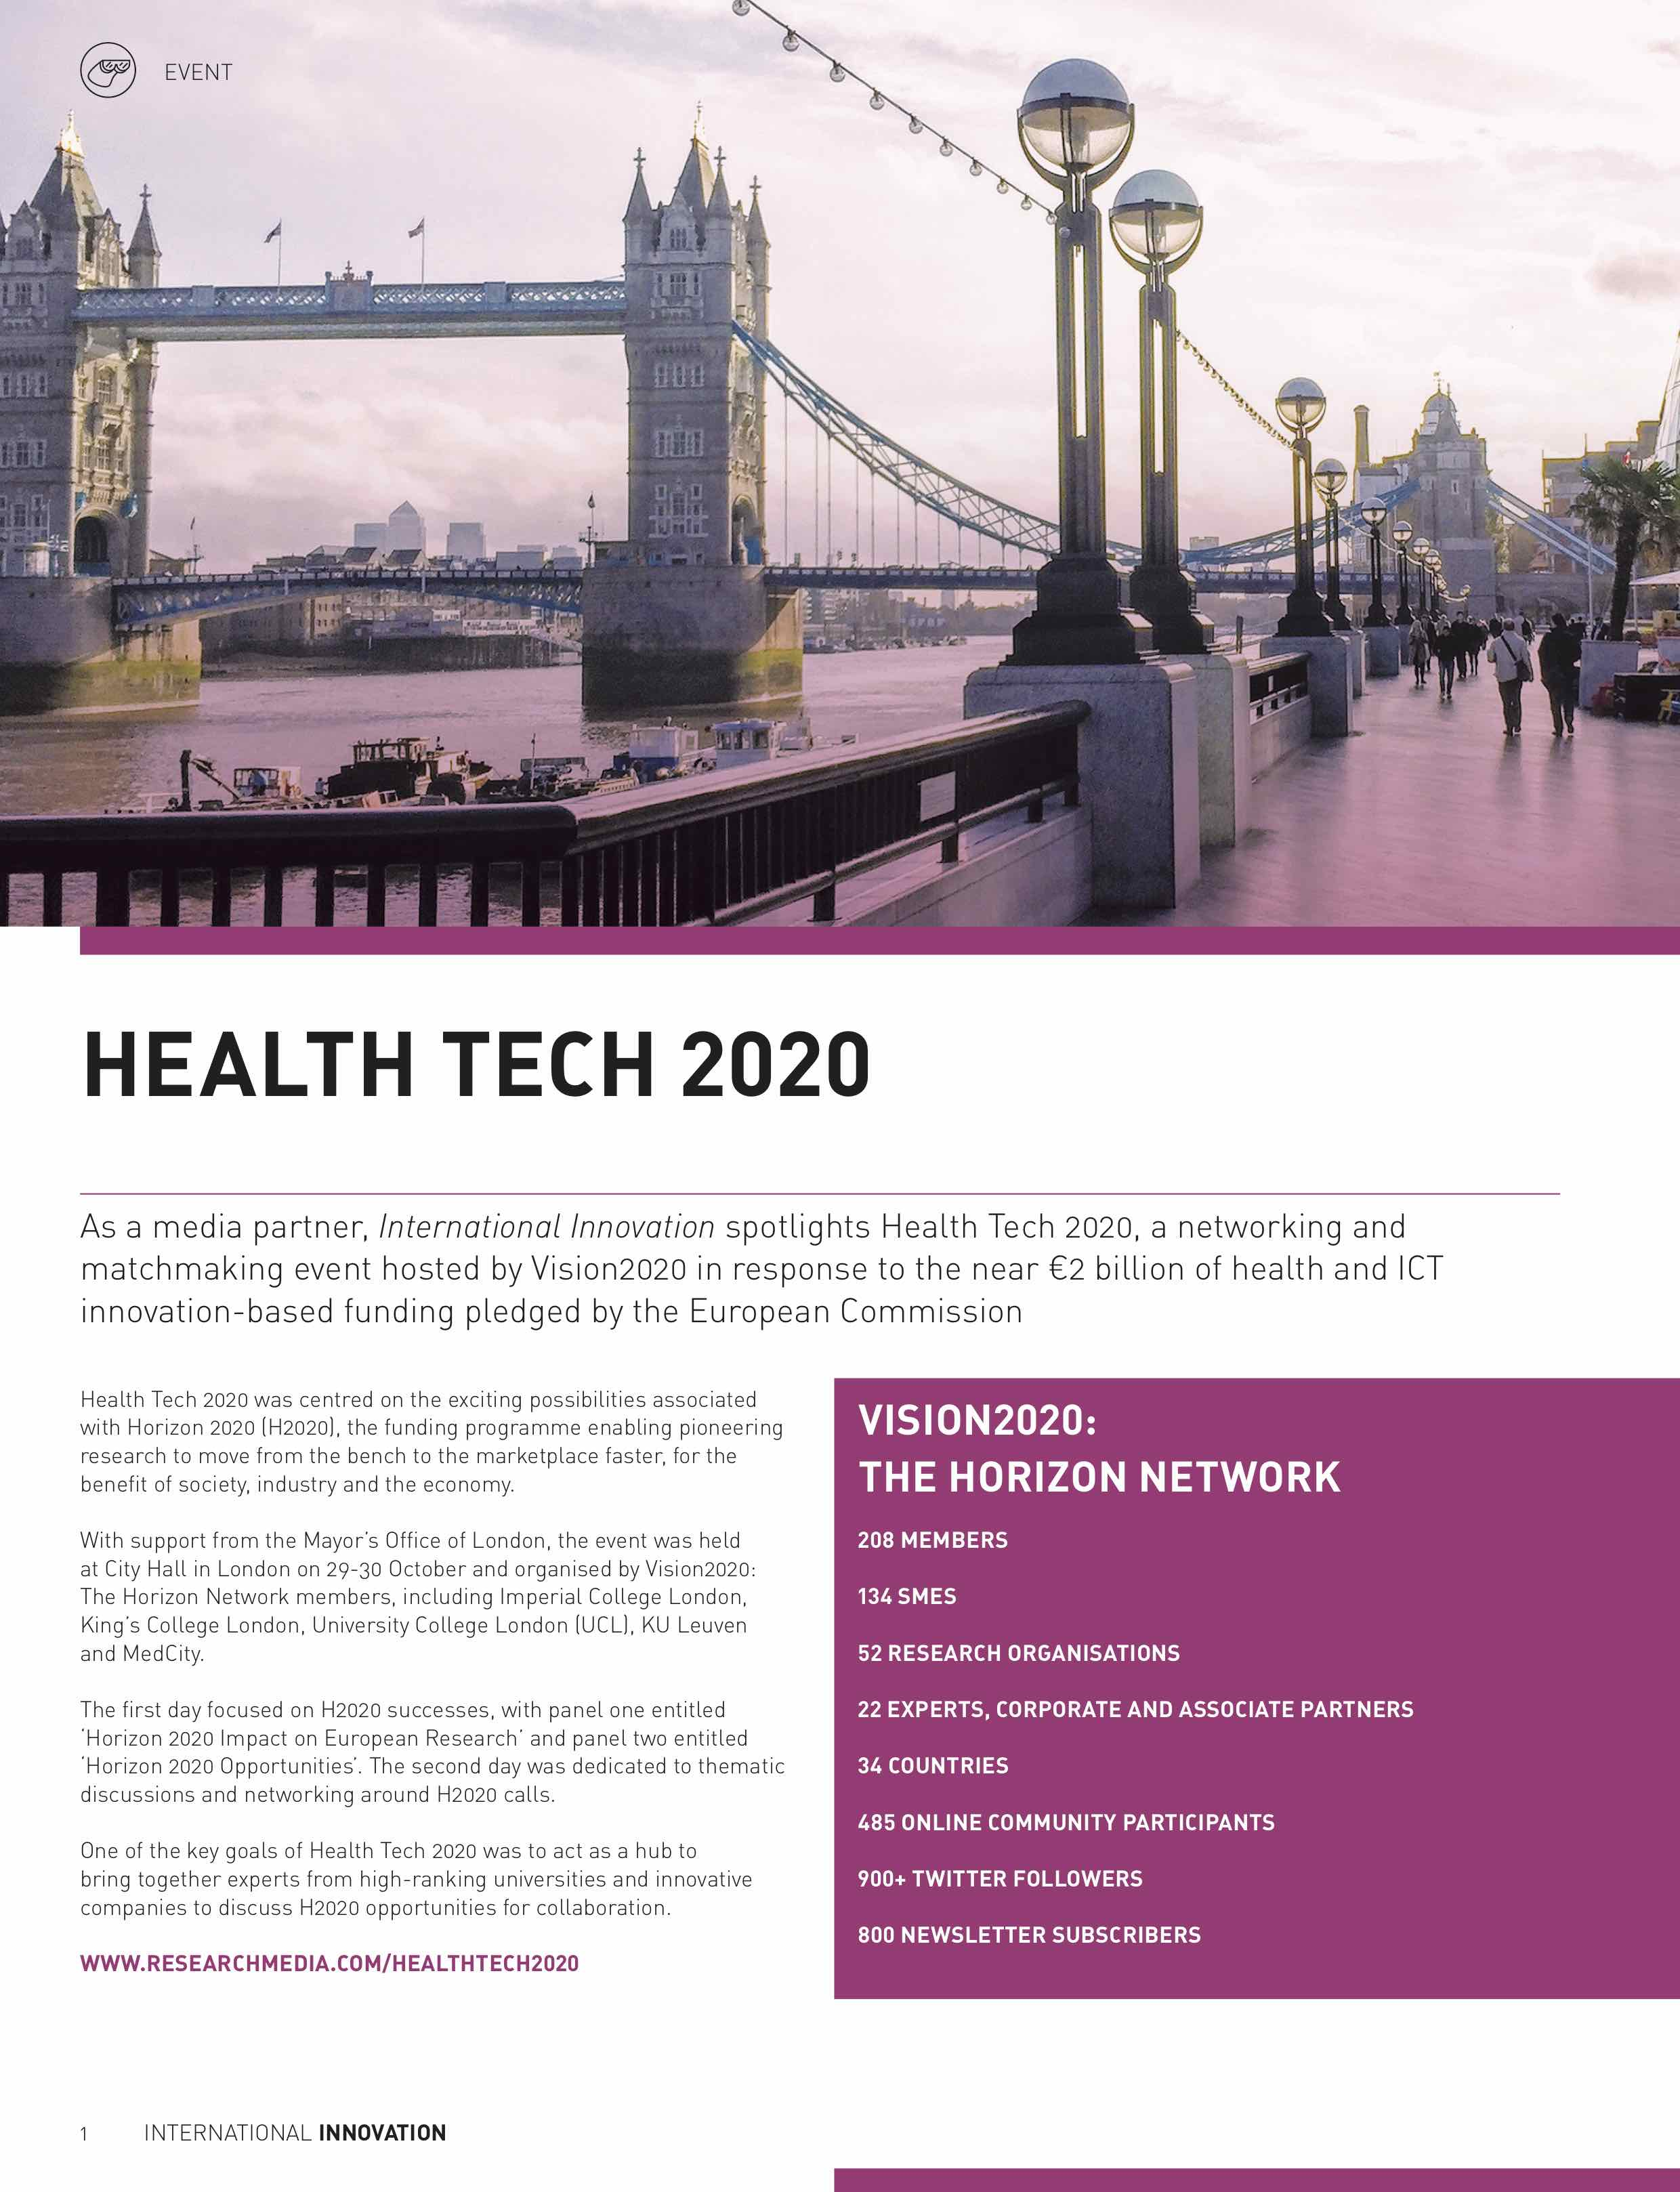 Health_Tech_2020_Intl_Innovation_Research_Impacts_Q3_2_Research_Media_HR.jpg